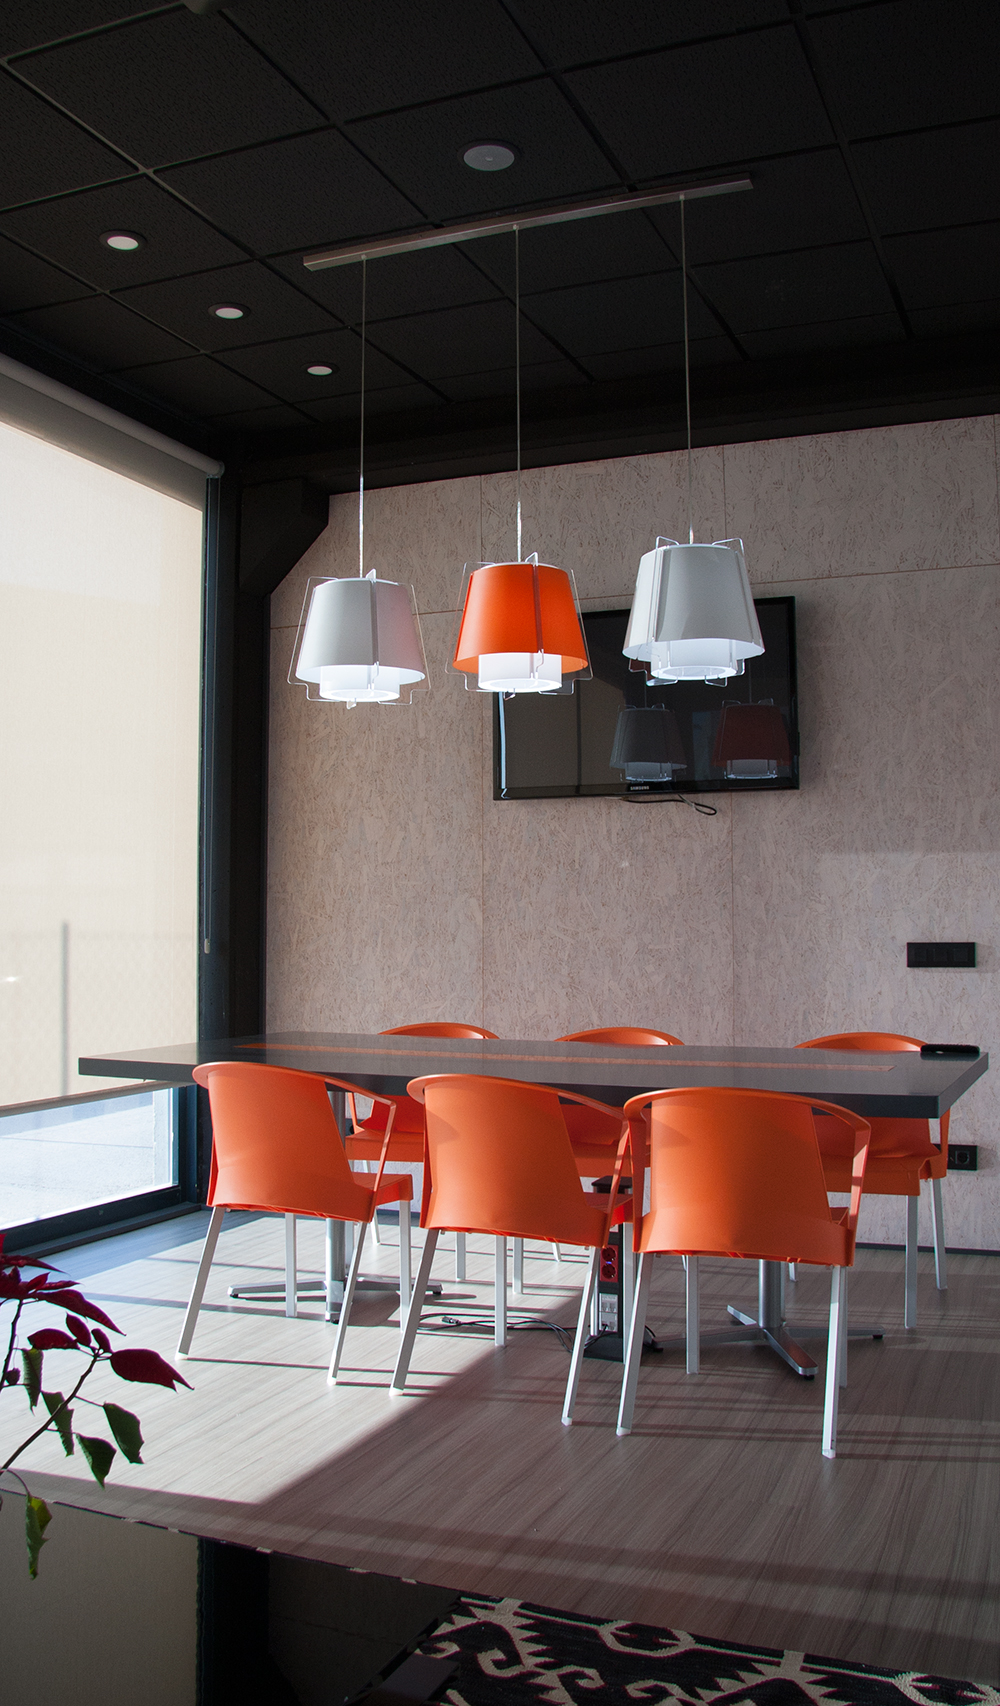 Conference Room Lighting Design: LIGHTING AN OFFICE SPACE